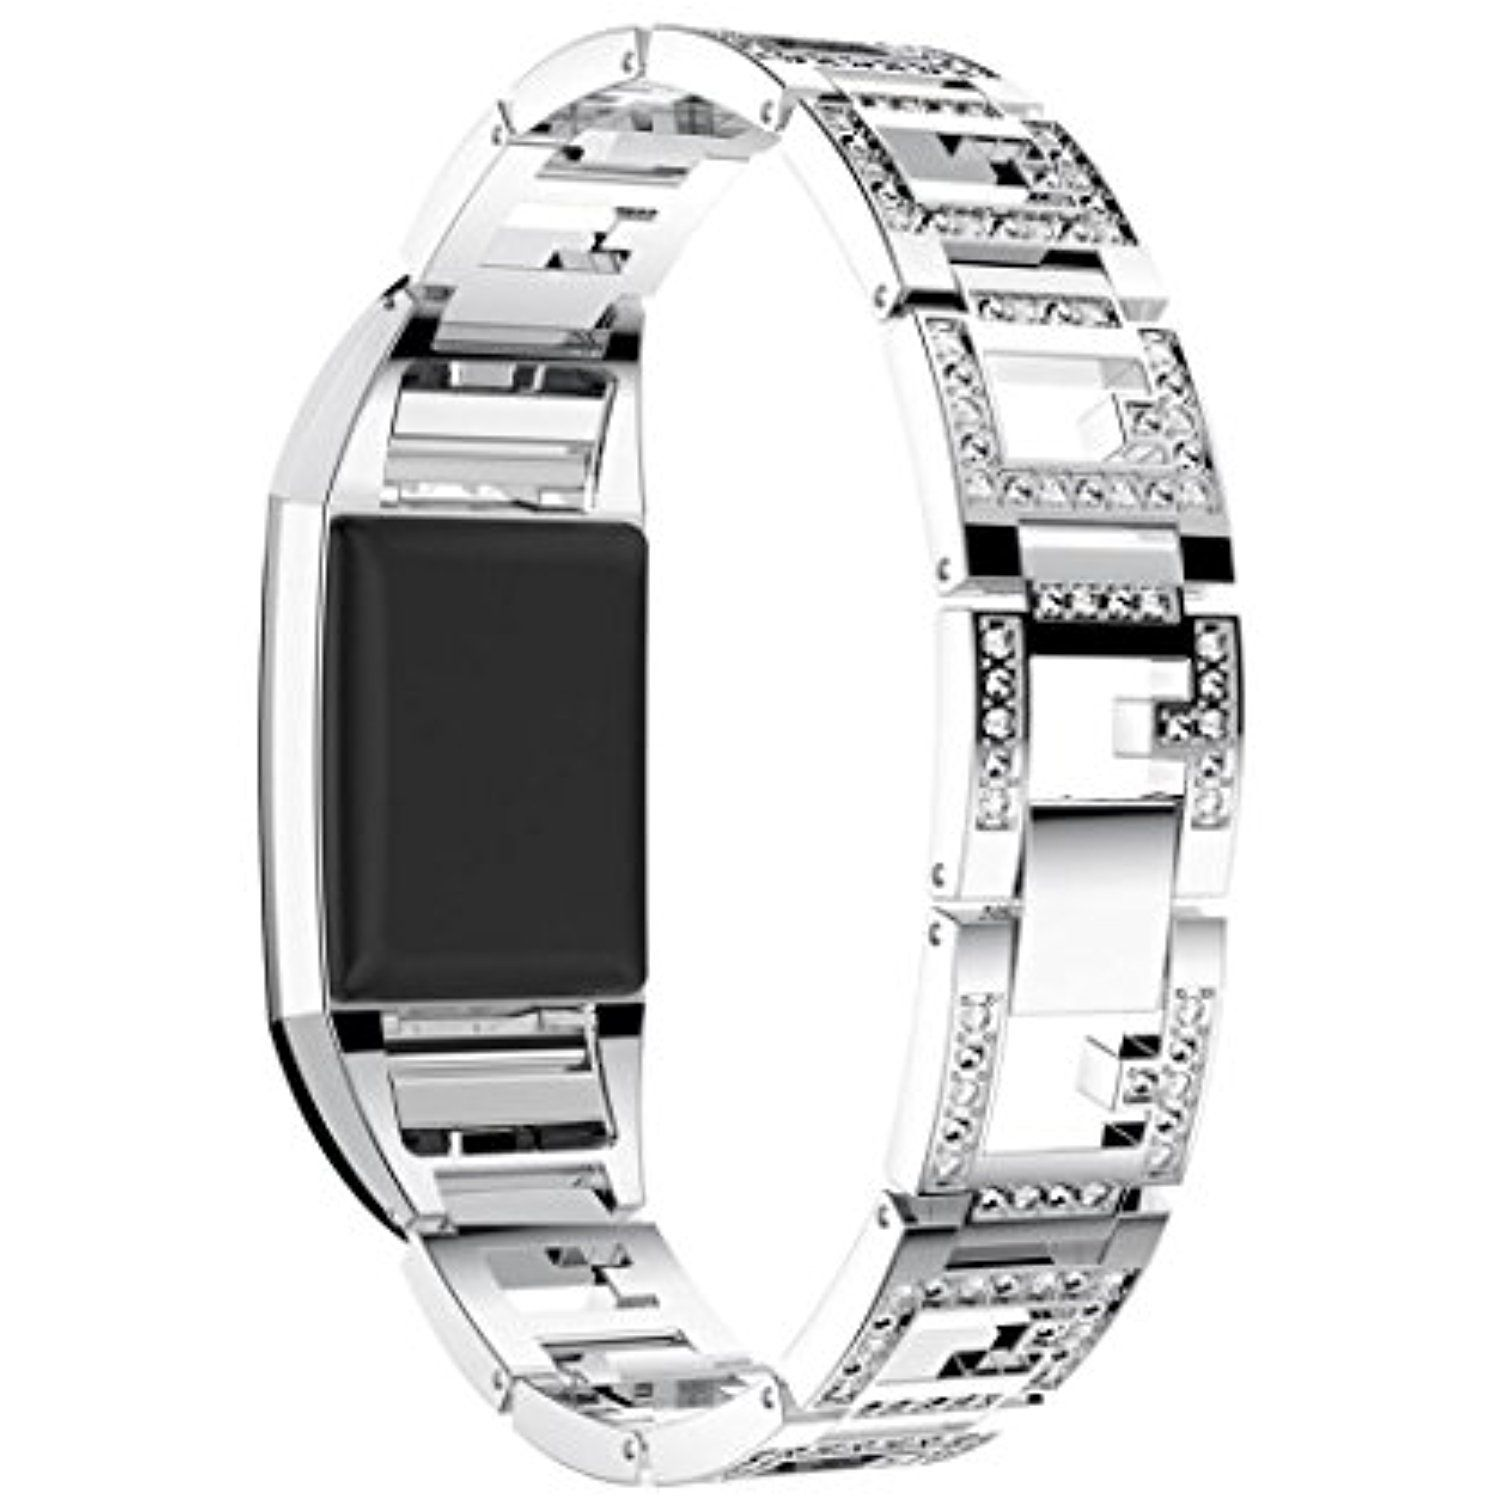 For Fitbit Charge 2 Bands Hp95 Tm Luxury Stainless Steel Watch Band Wrist Strap For Fitbit Charge 2 Silver Check Adjustable Bracelet Fitbit Silver Watch